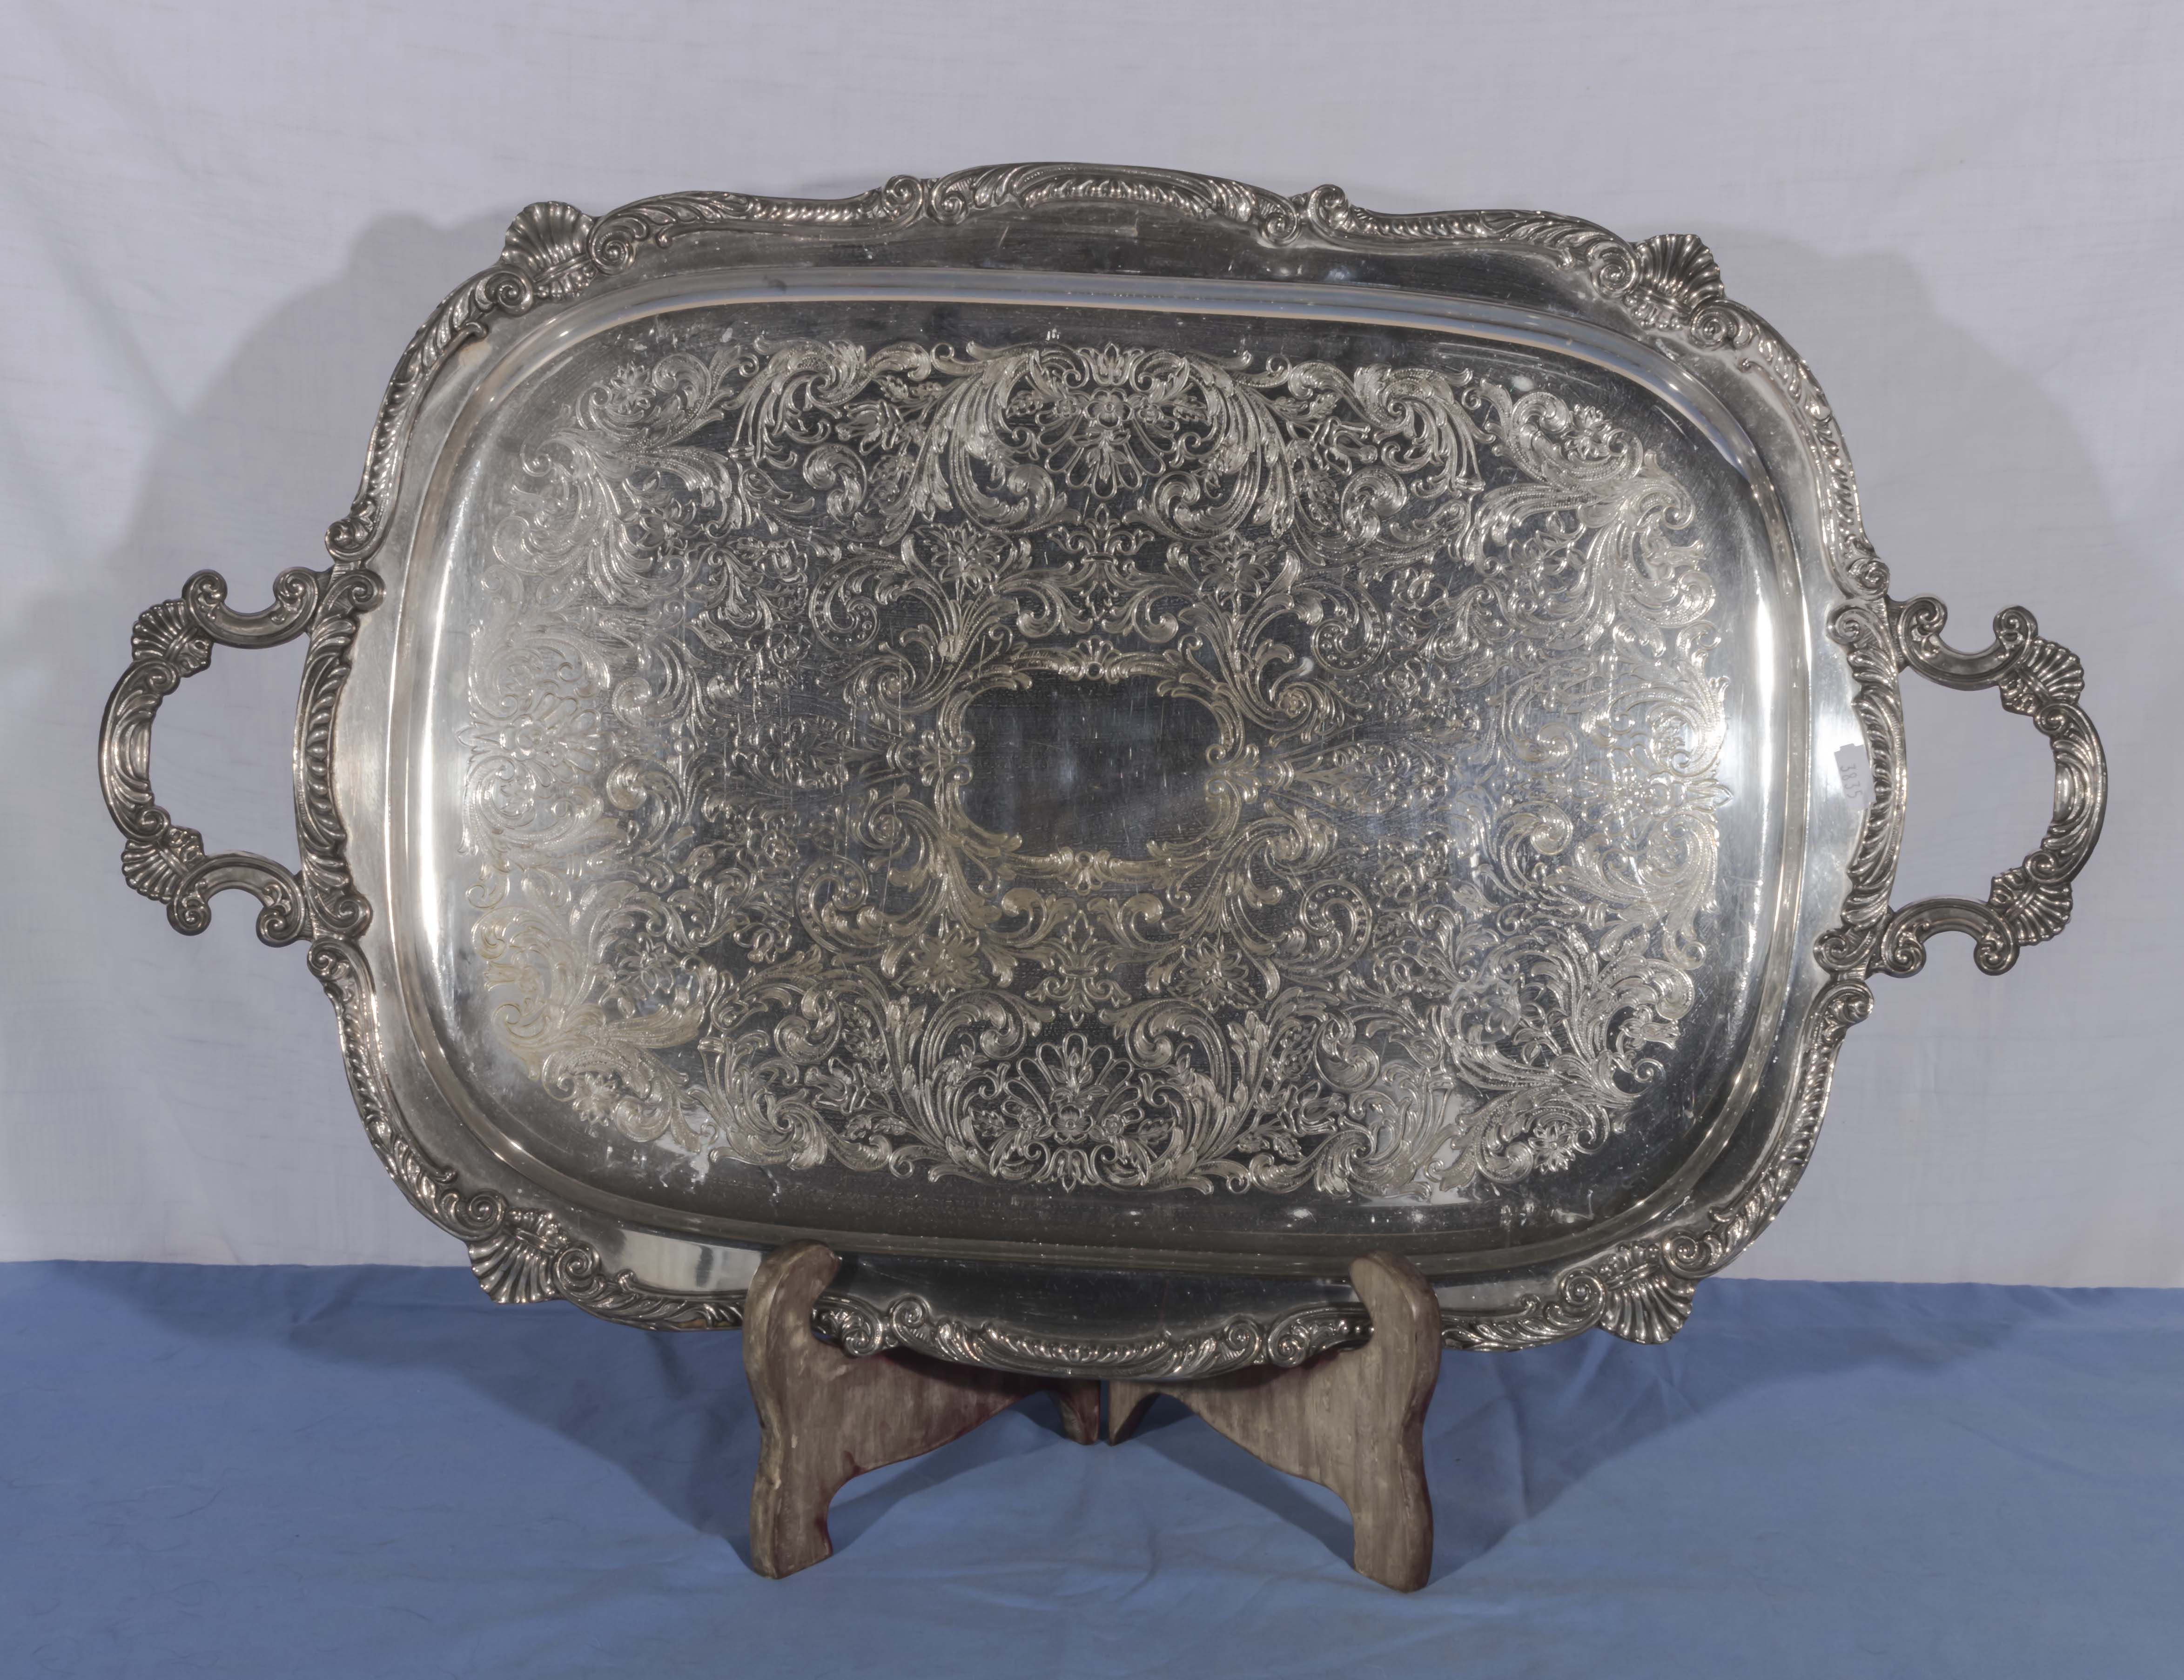 Lot 2 - A large silver plated tray